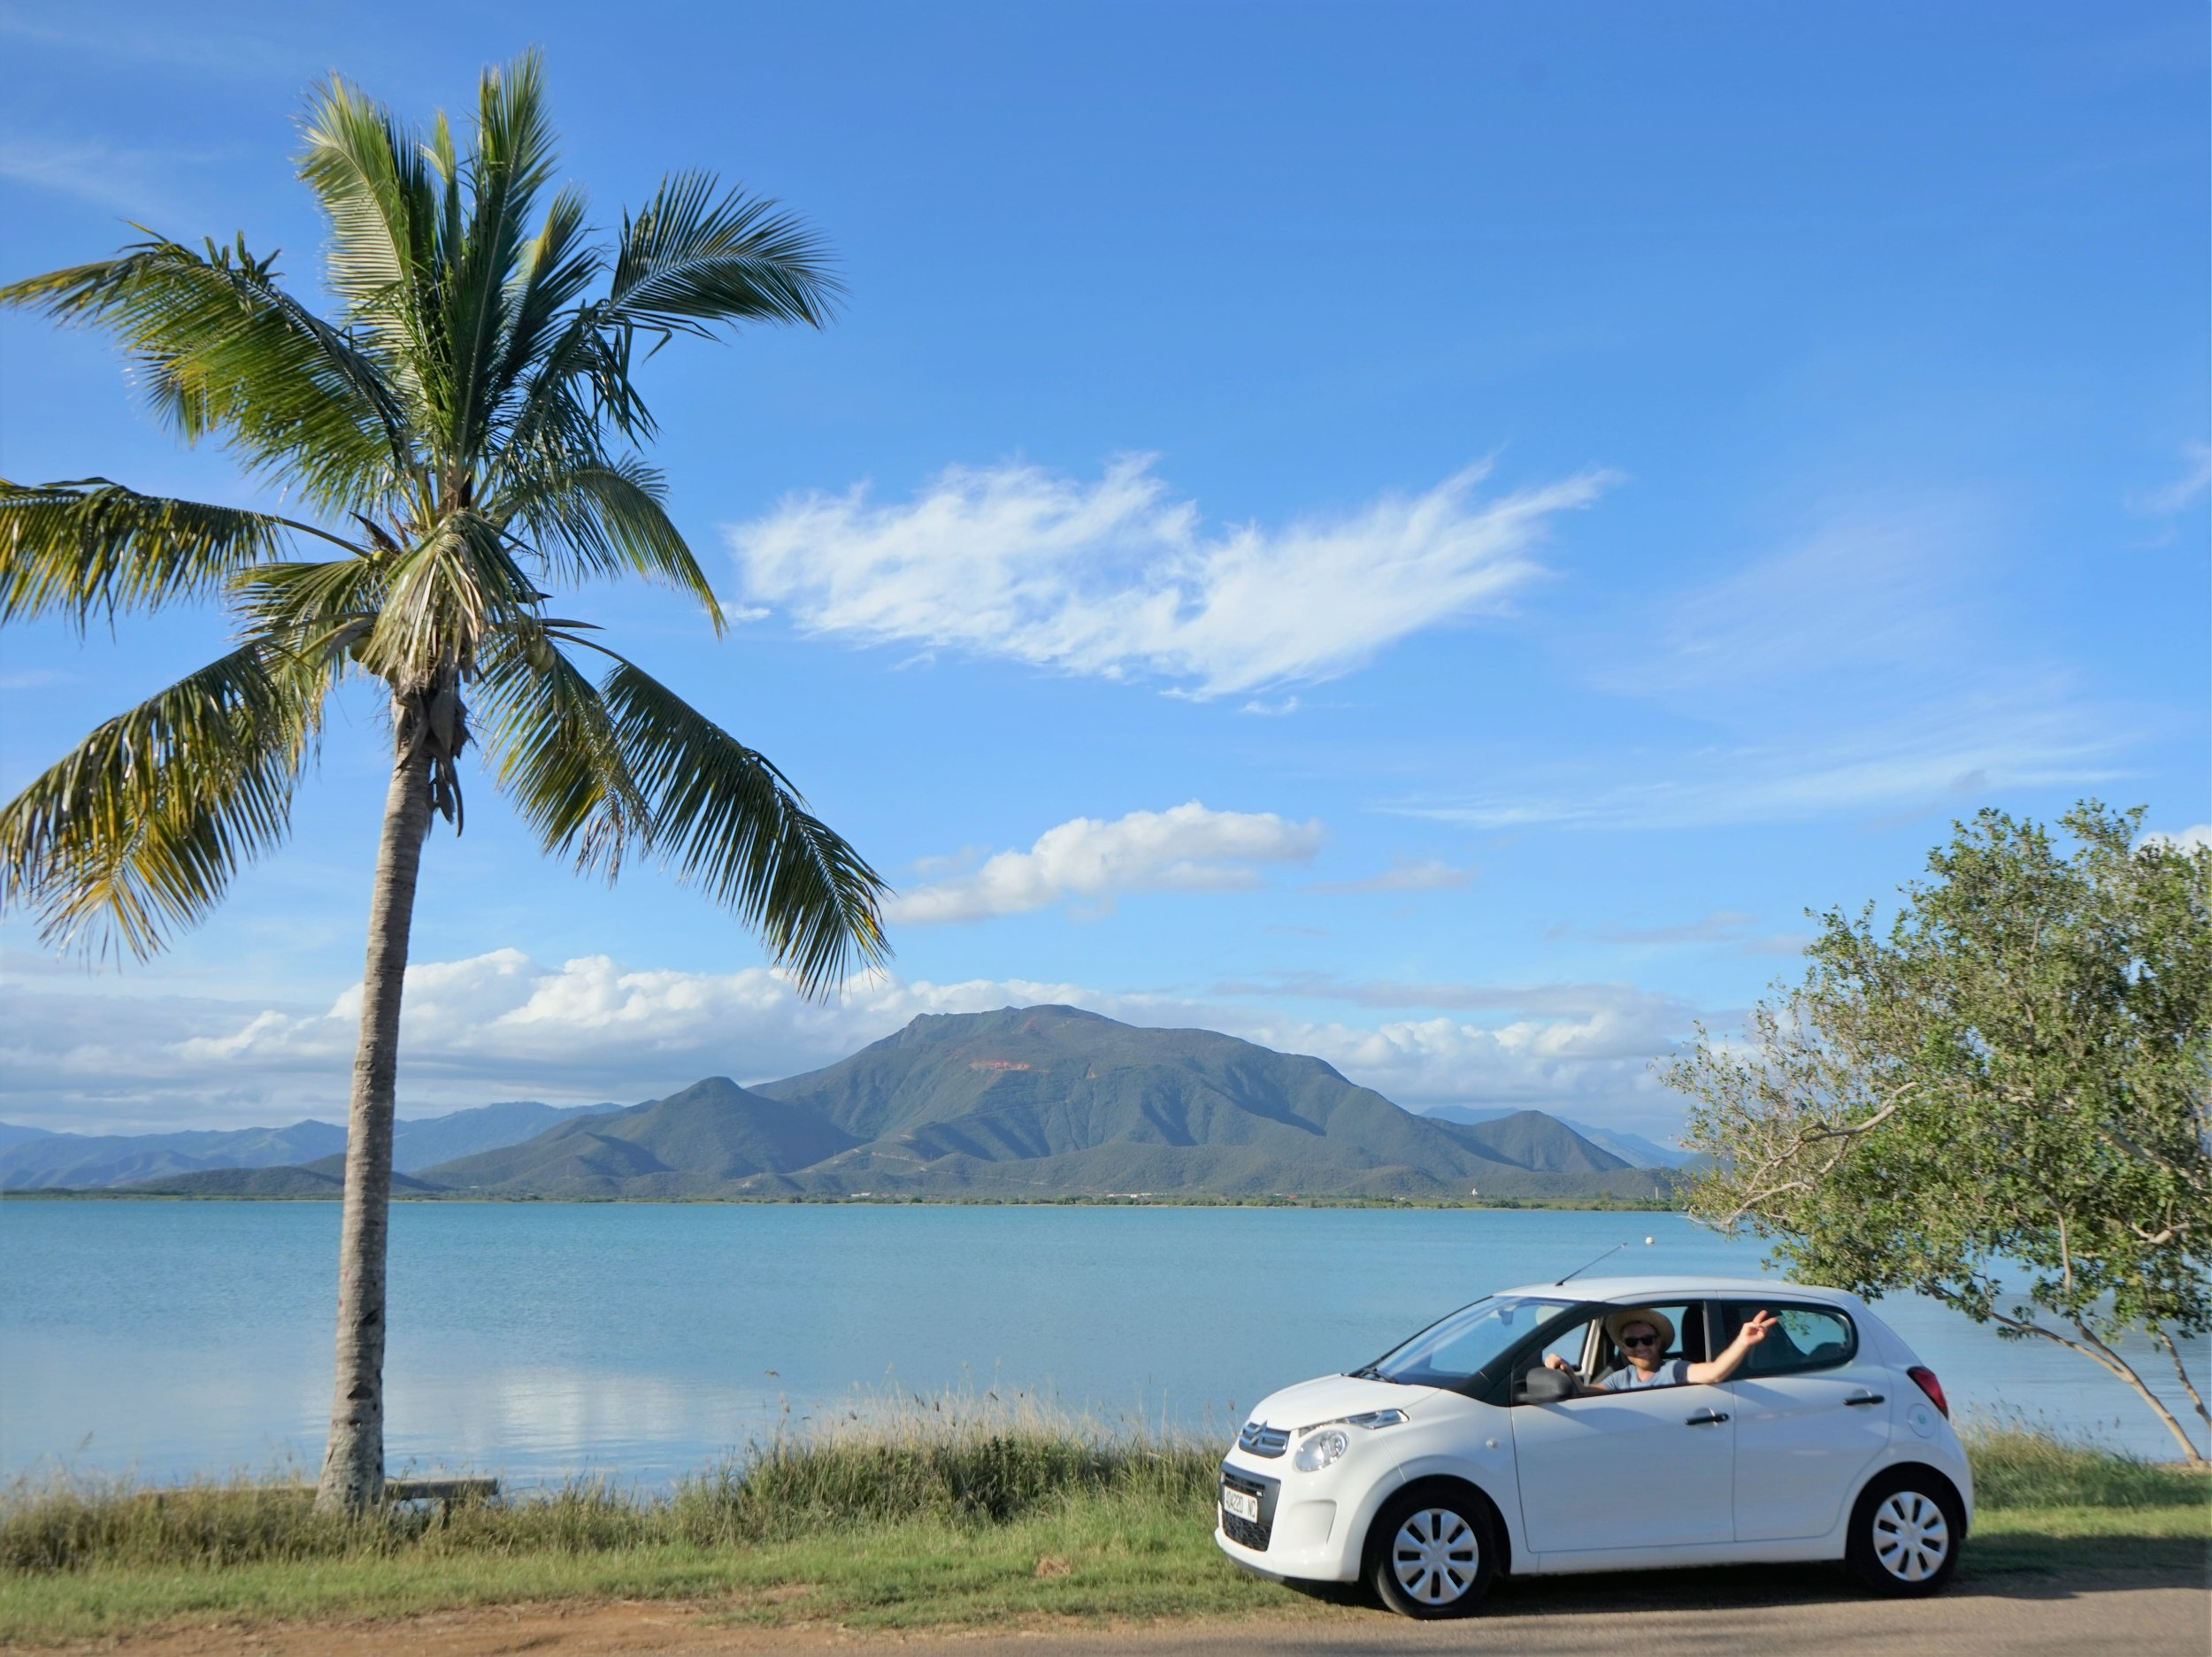 Renting a car for a New Caledonia road trip is one of the best things to do in New Caledonia and one of our most important New Caledonia travel tips.